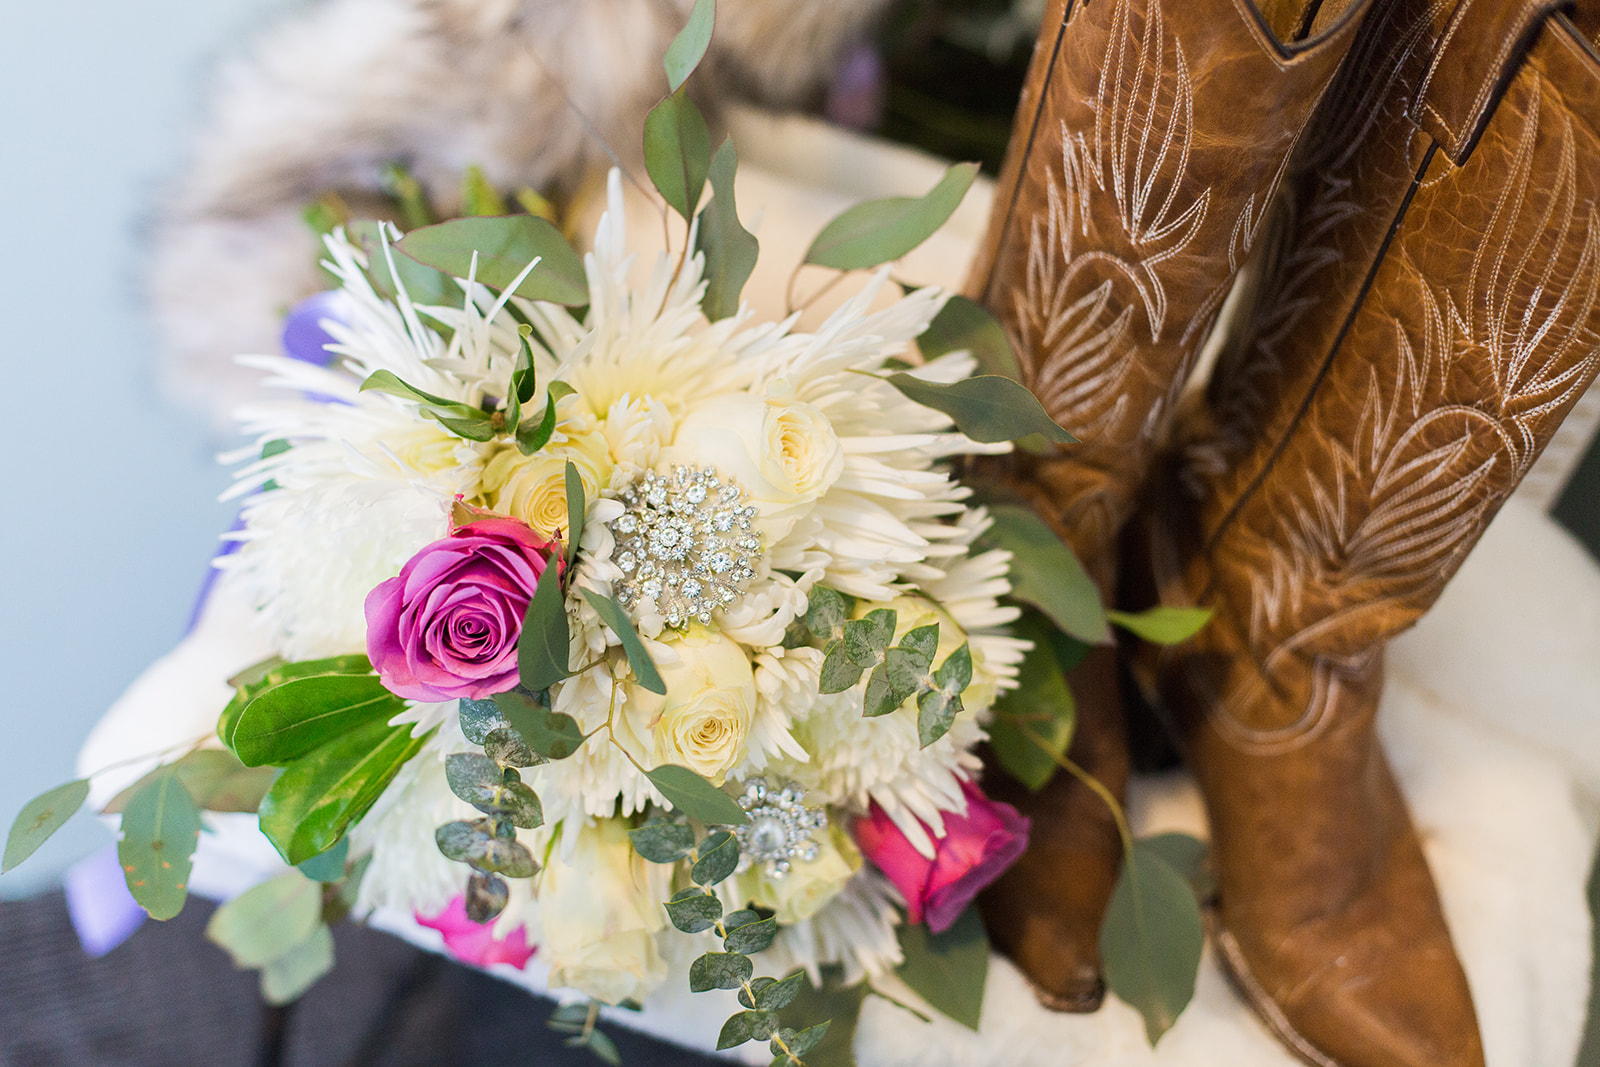 spokane wedding dress cowboy boots flowers